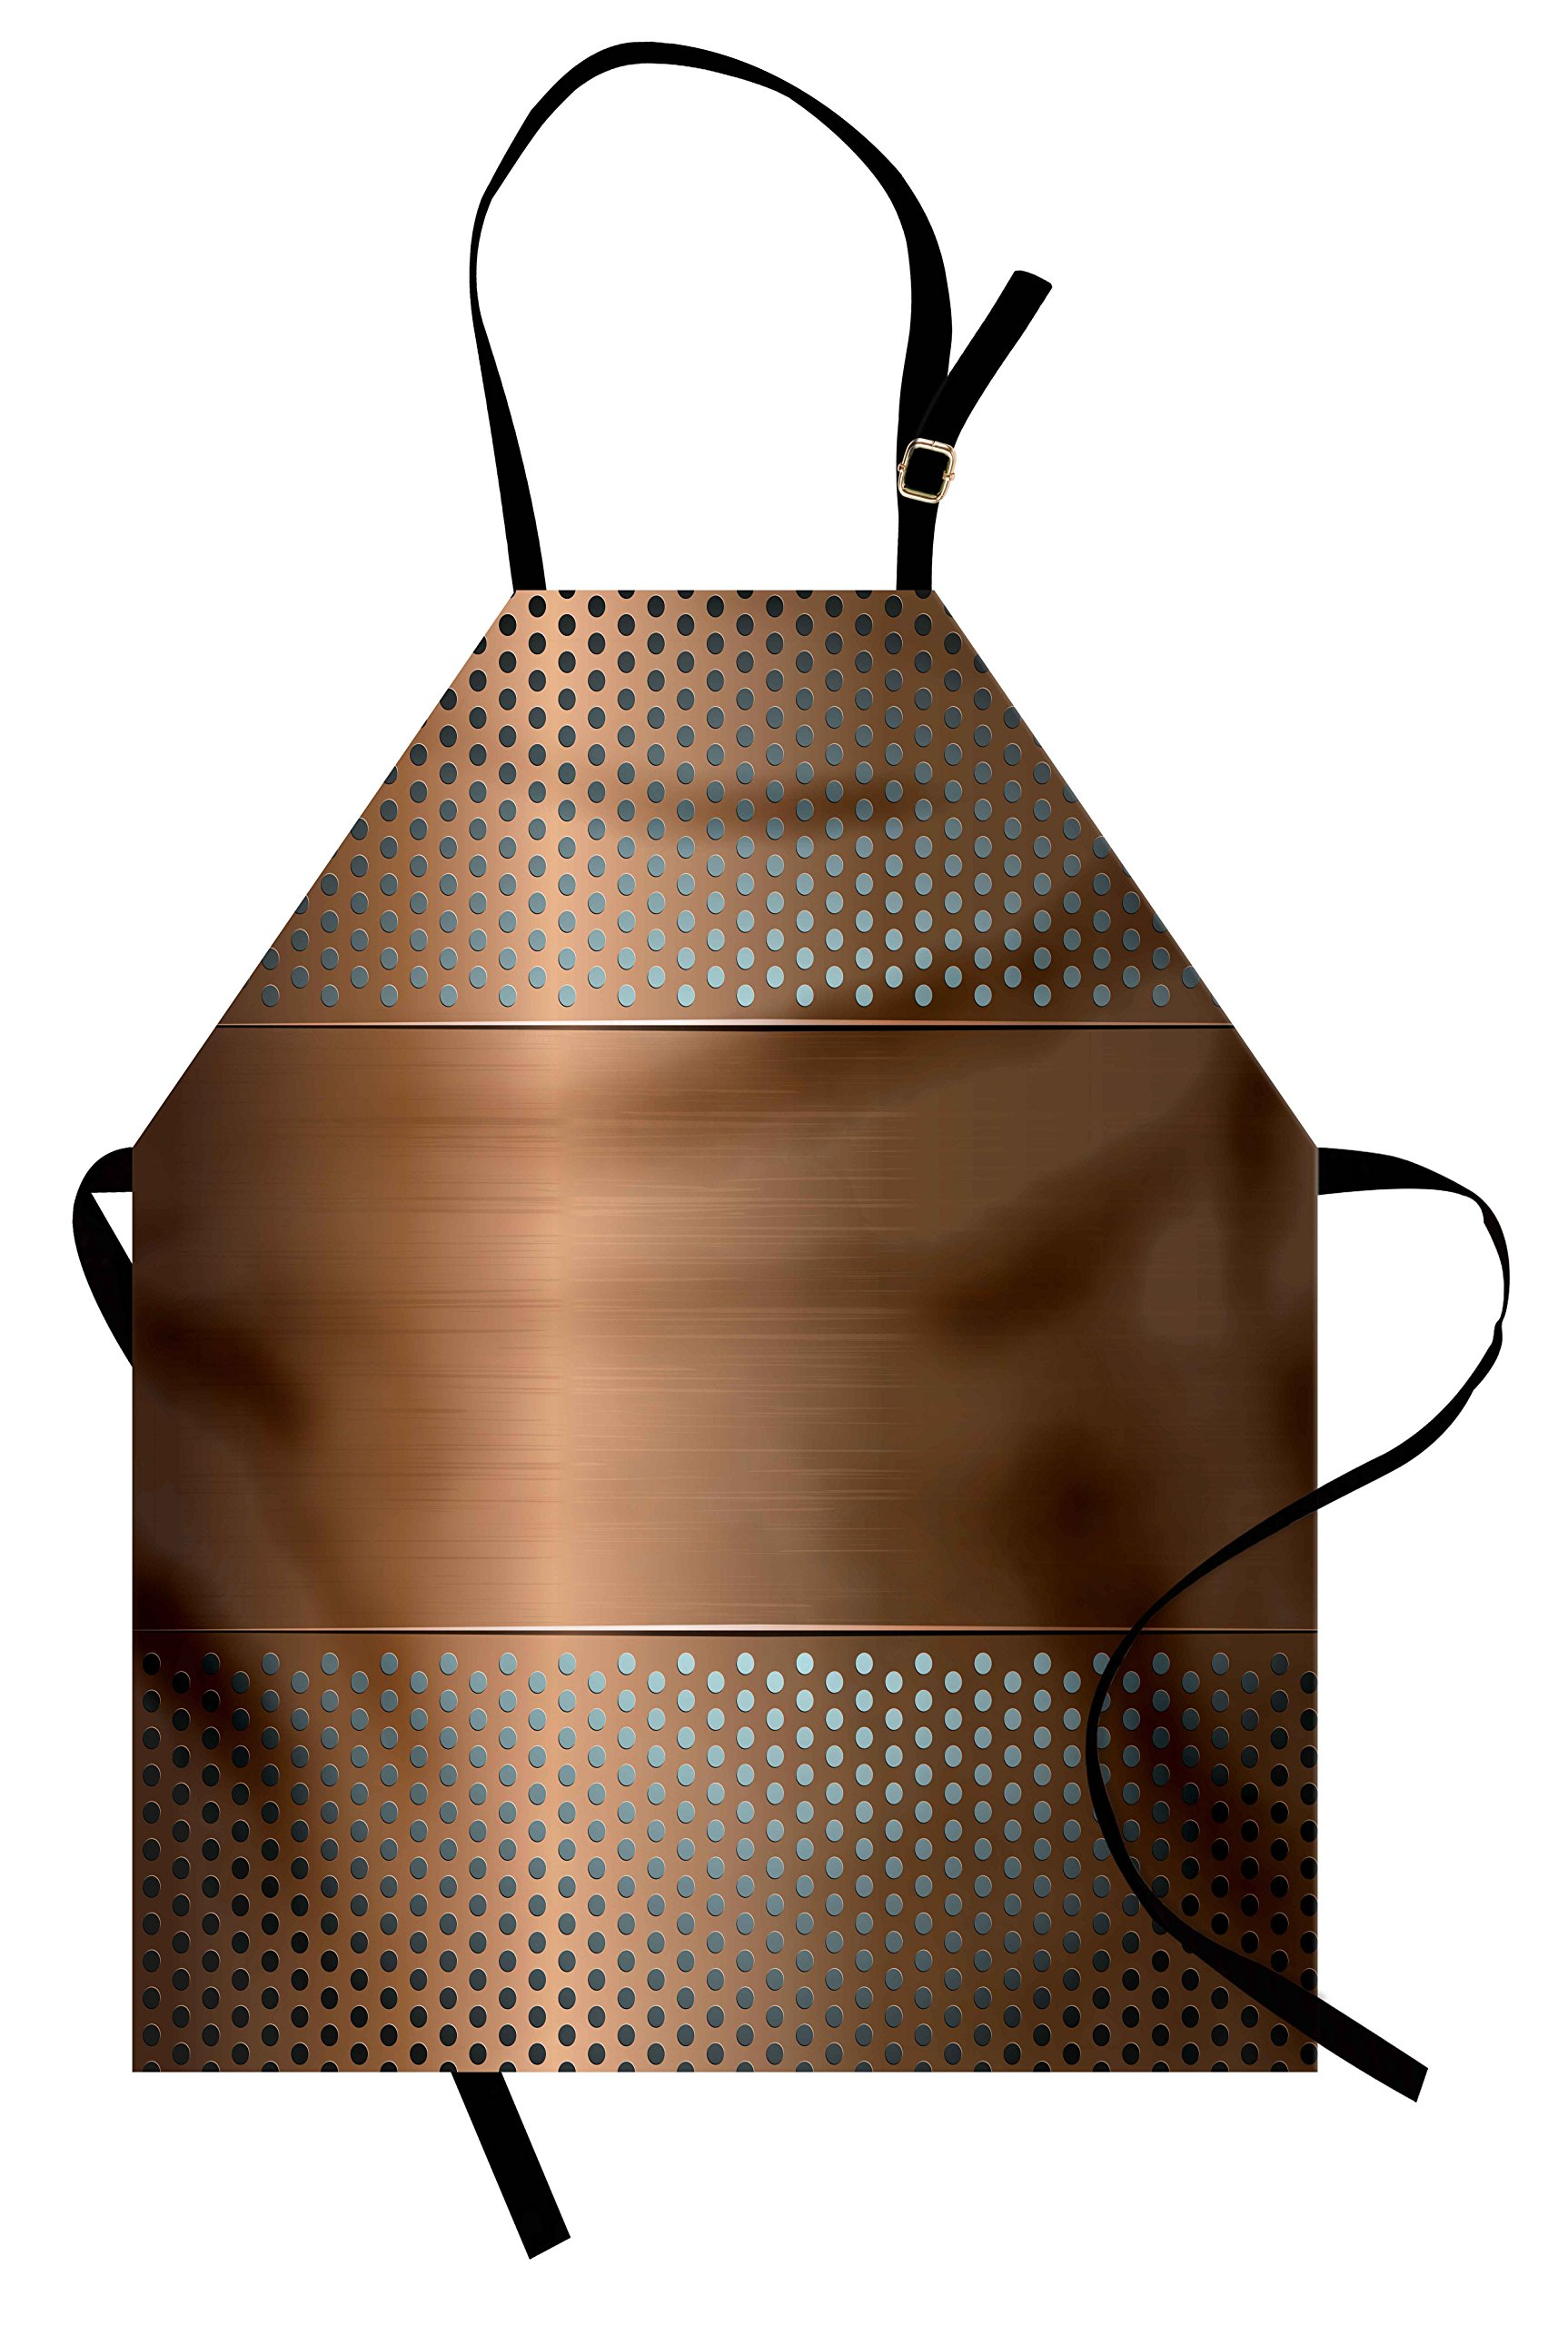 Ambesonne Industrial Apron, Perforated Grid Plate Steel with Dots Illustration Futuristic Technology Theme, Unisex Kitchen Bib Apron with Adjustable Neck for Cooking Baking Gardening, Ombre Bronze